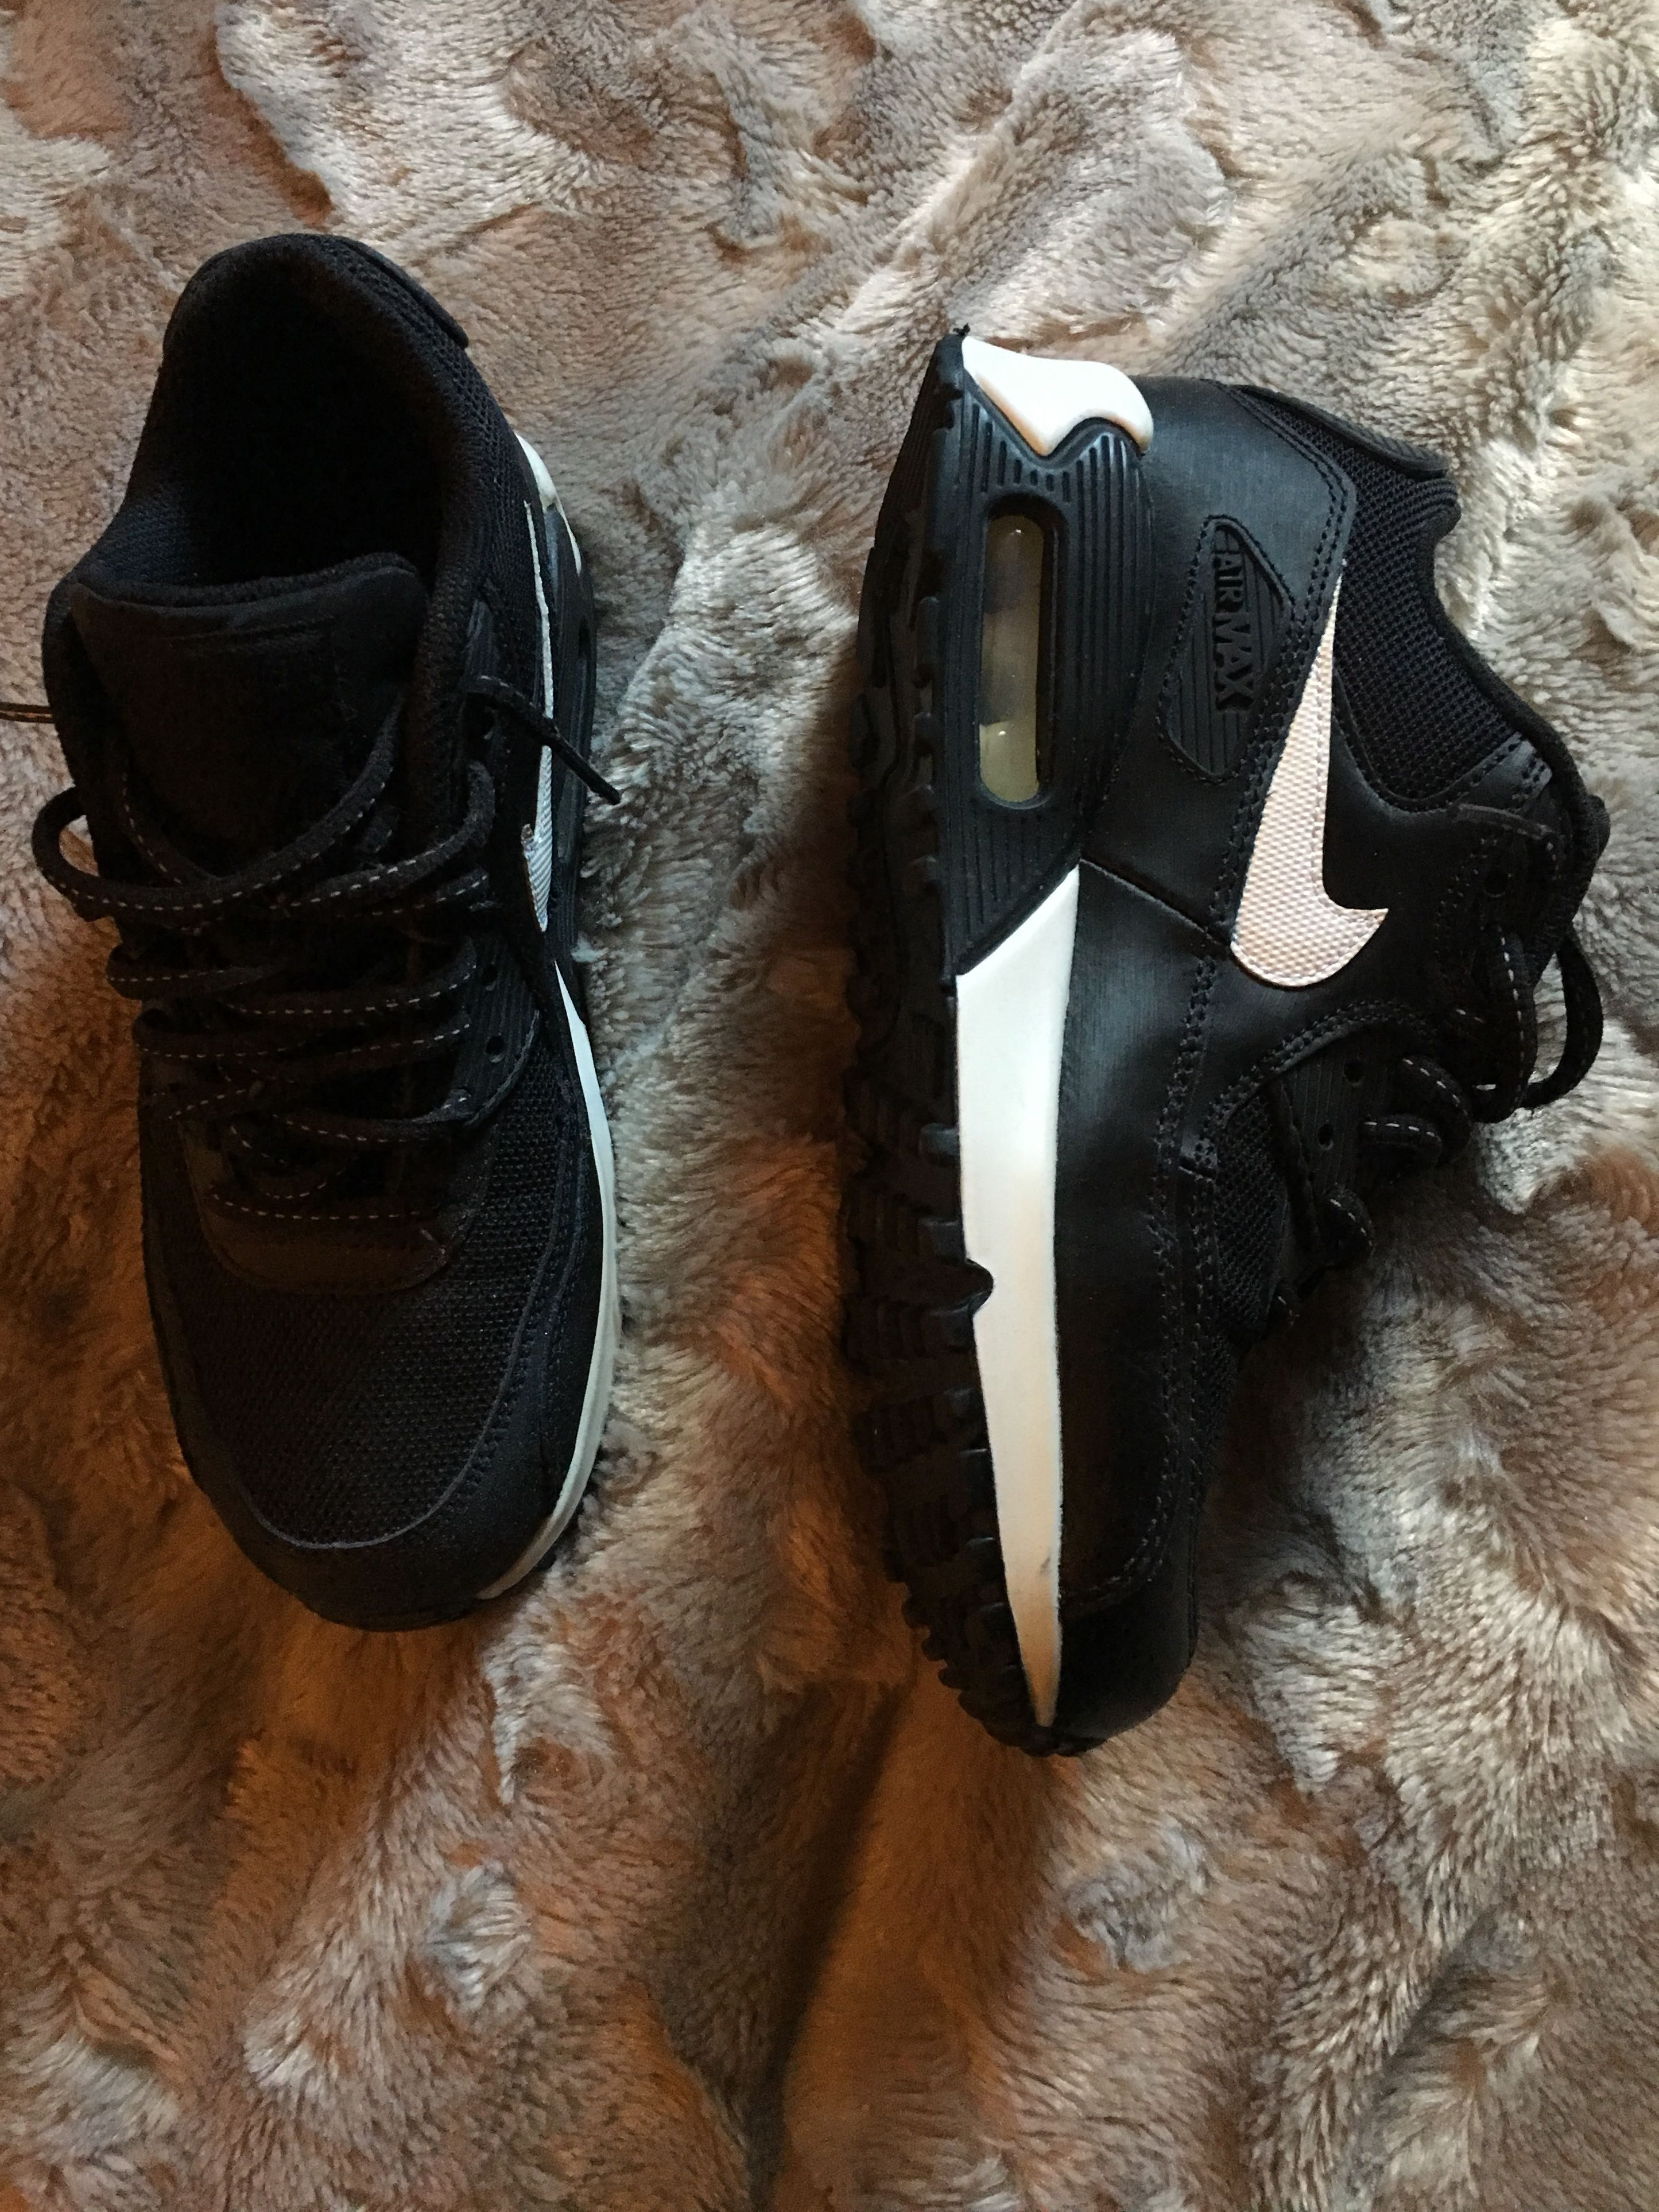 Nike AirMax - Mint Condition